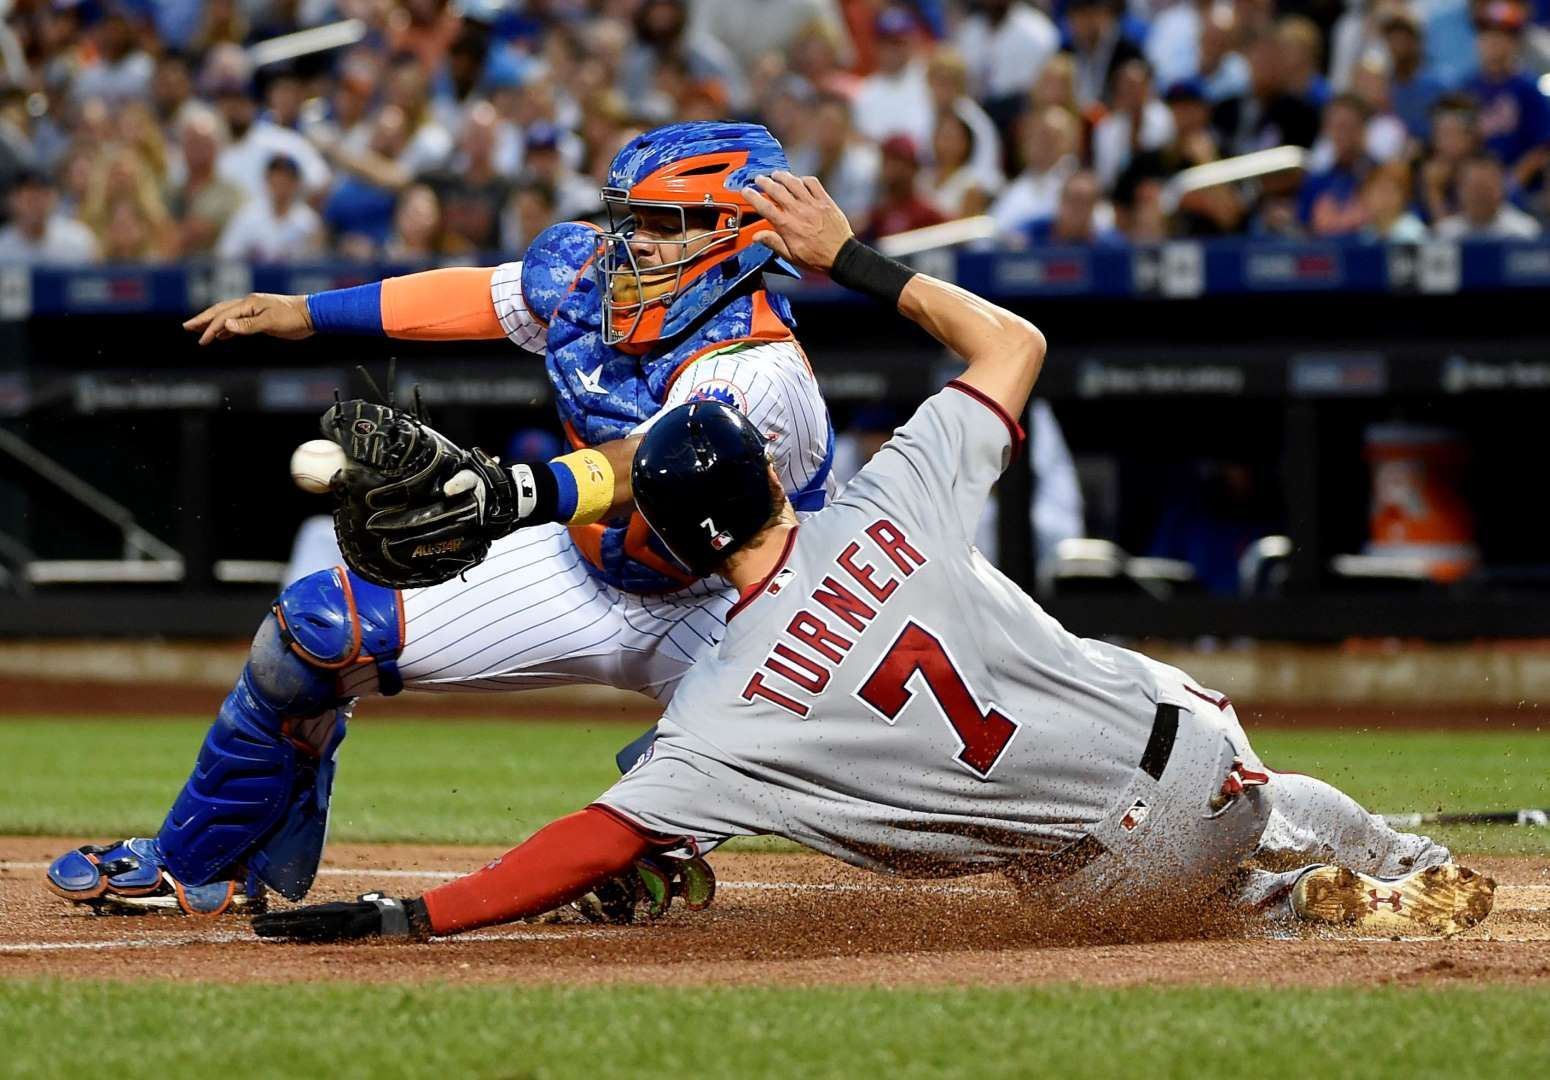 Scoring Time Nationals Trea Turner Scores At Home Plate During A Game Against The Mets On Sept 2 In New York Major League Baseball Washington Nationals Mets